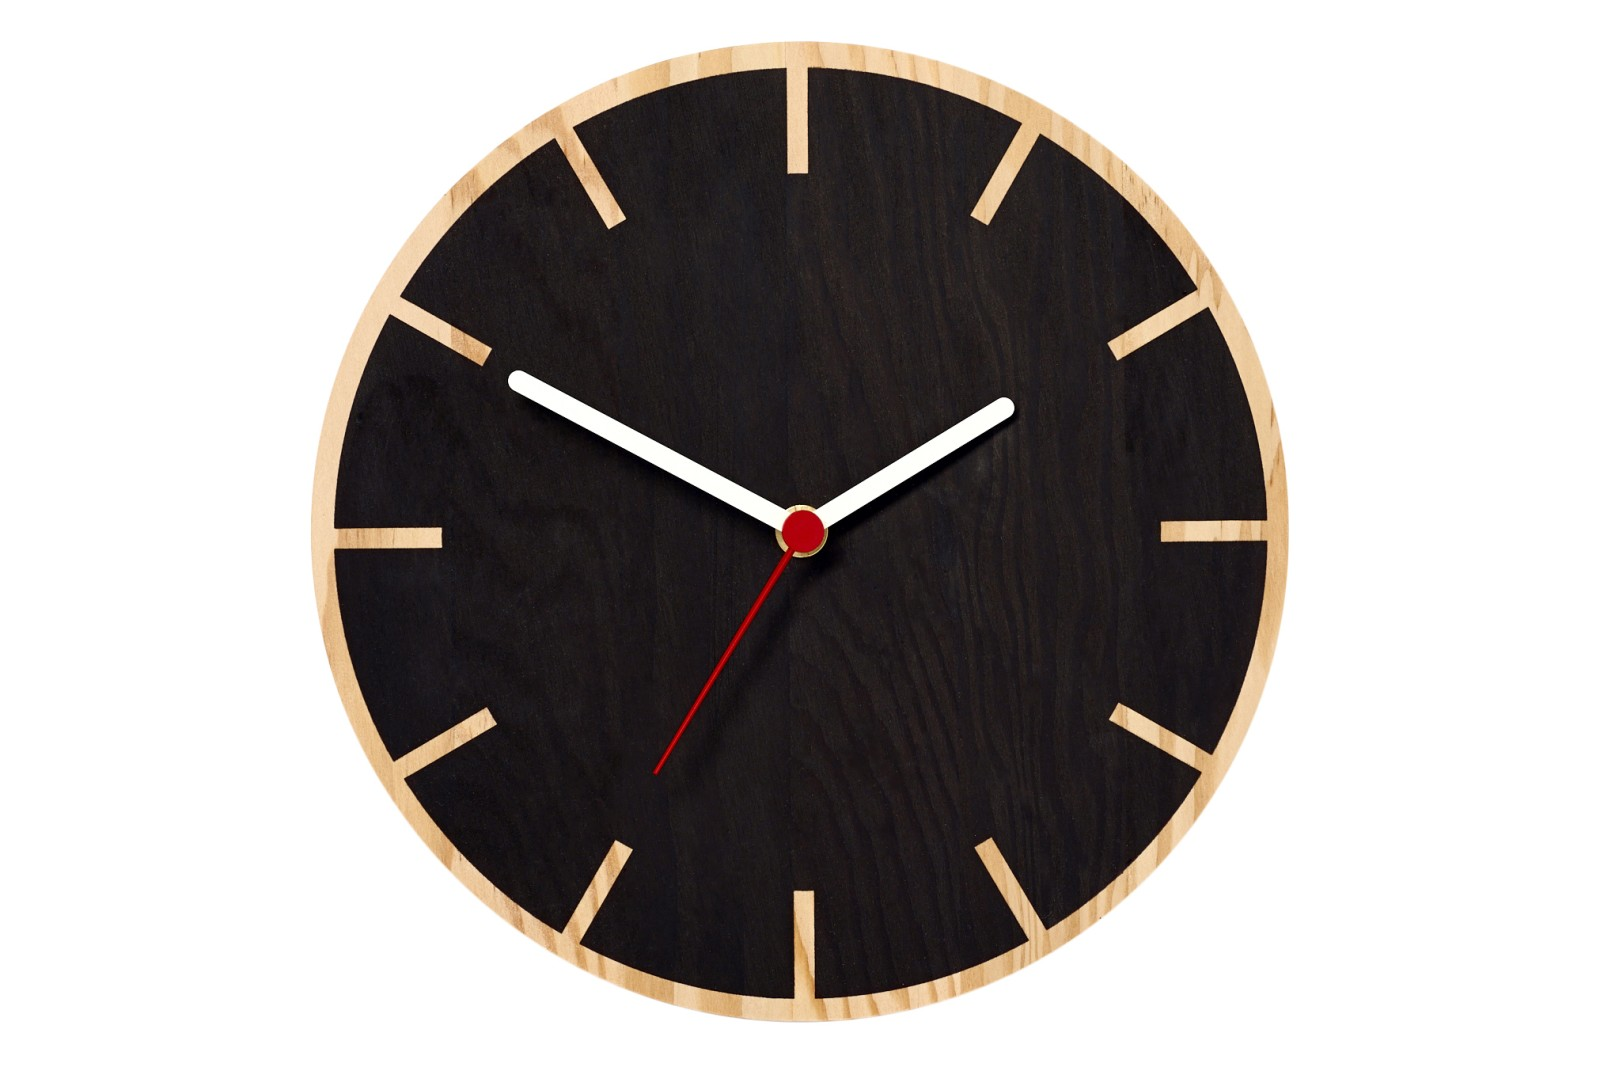 Primary Wall Clock Cog, Black